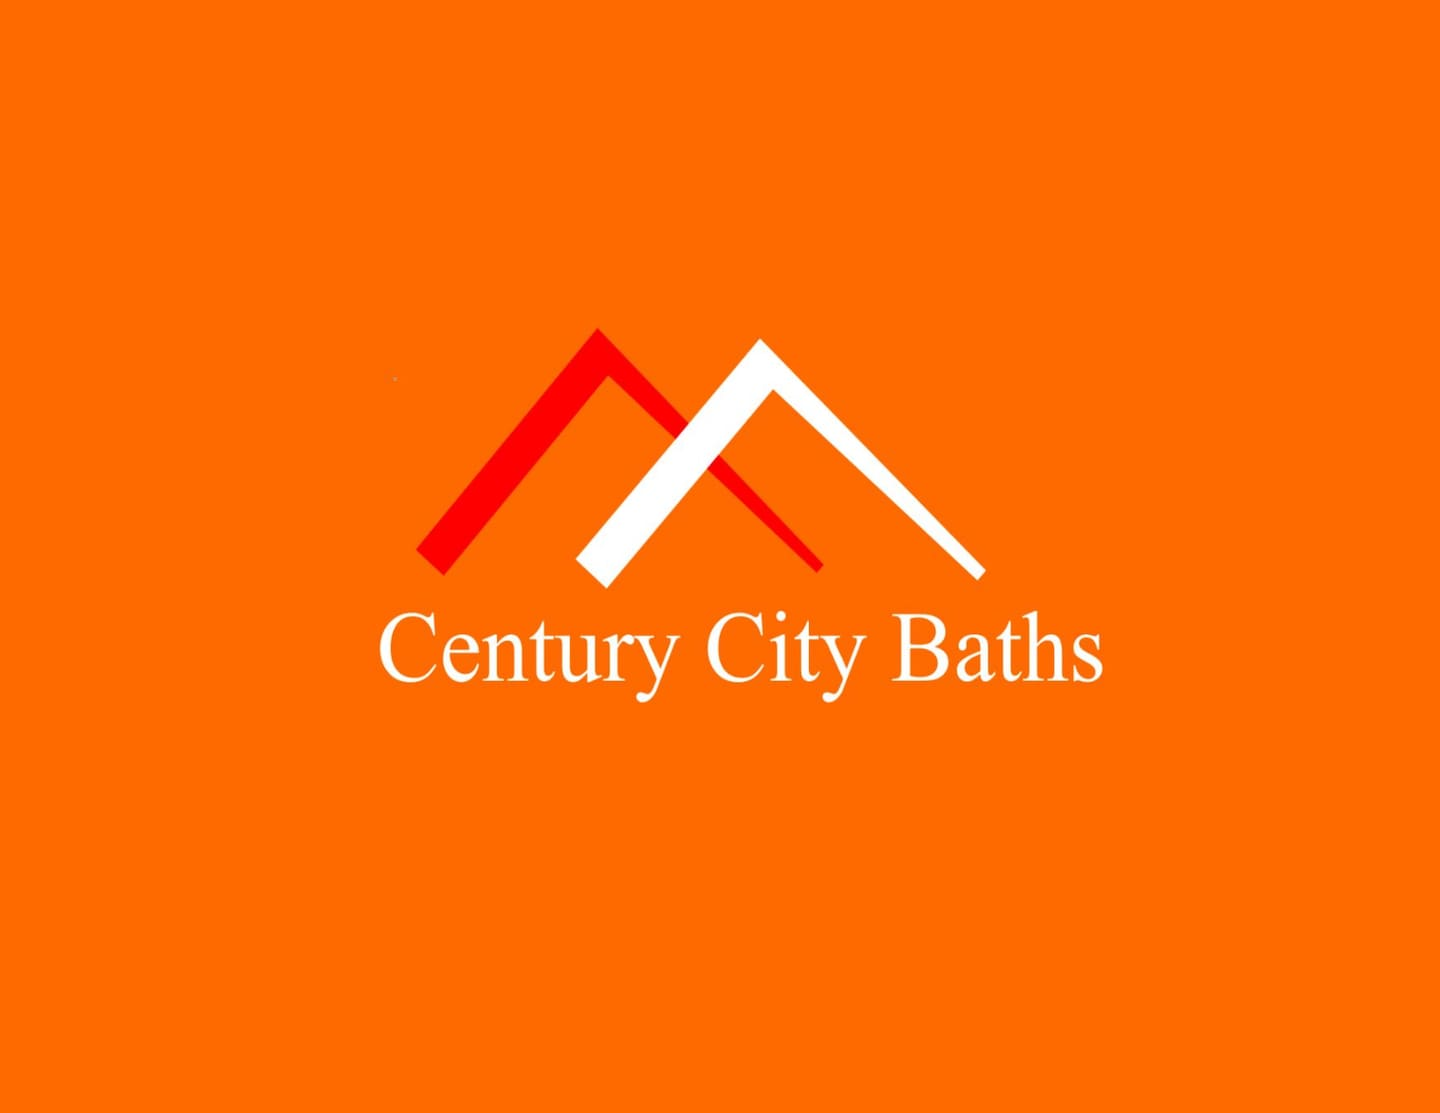 Century City Baths, LLC